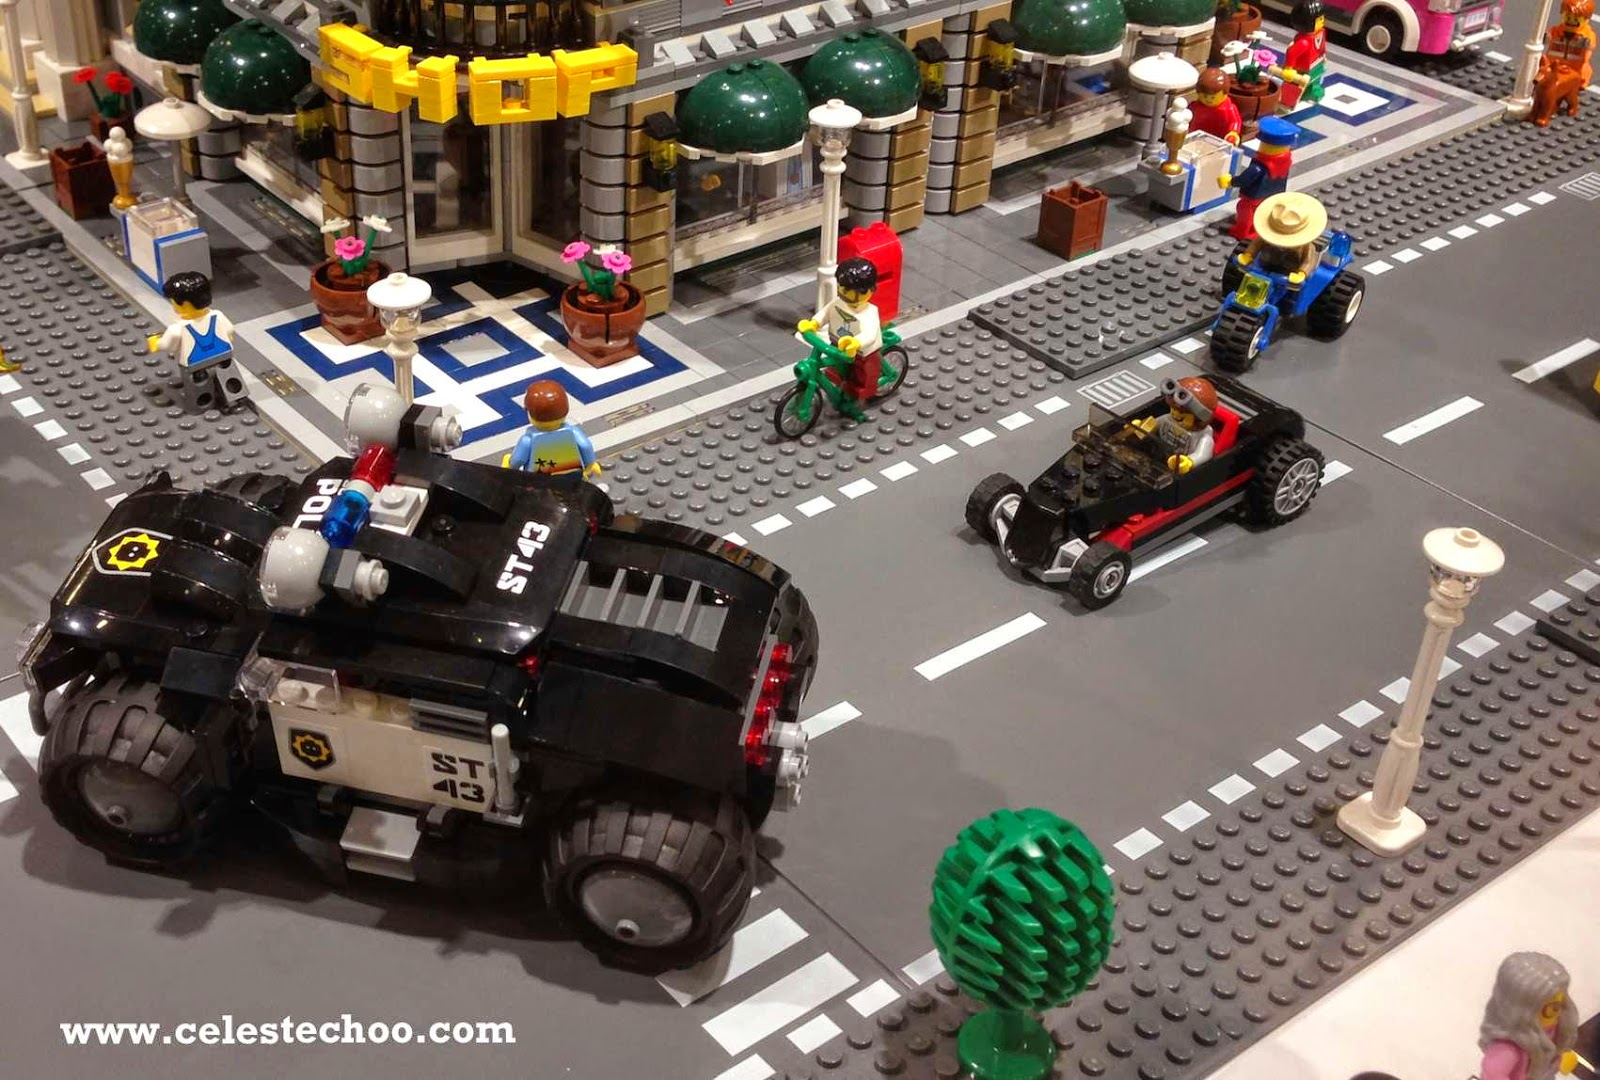 Police Car Toys For Boys : Celestechoo lego shop and model display in bangsar